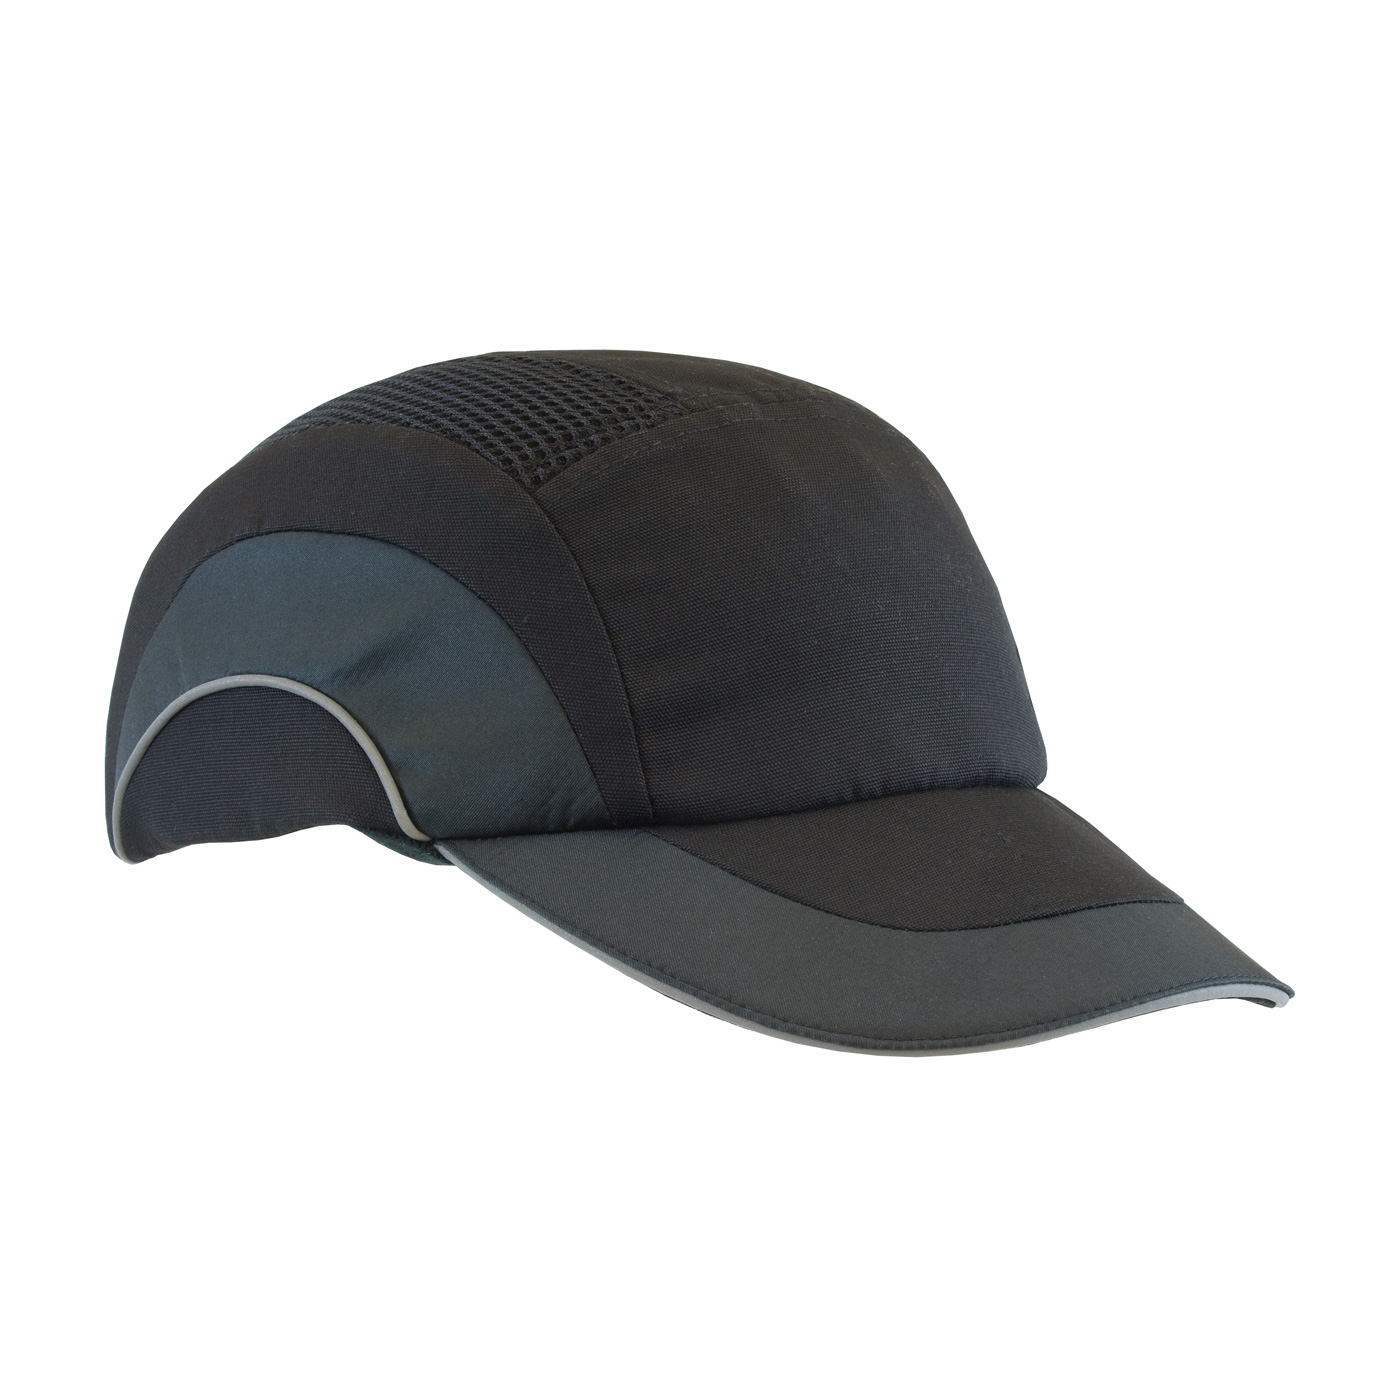 282-ABR170 PIP® Low-Profile HardCap A1+™ Baseball Style Bump Cap with Reflective Piping. Black/Black